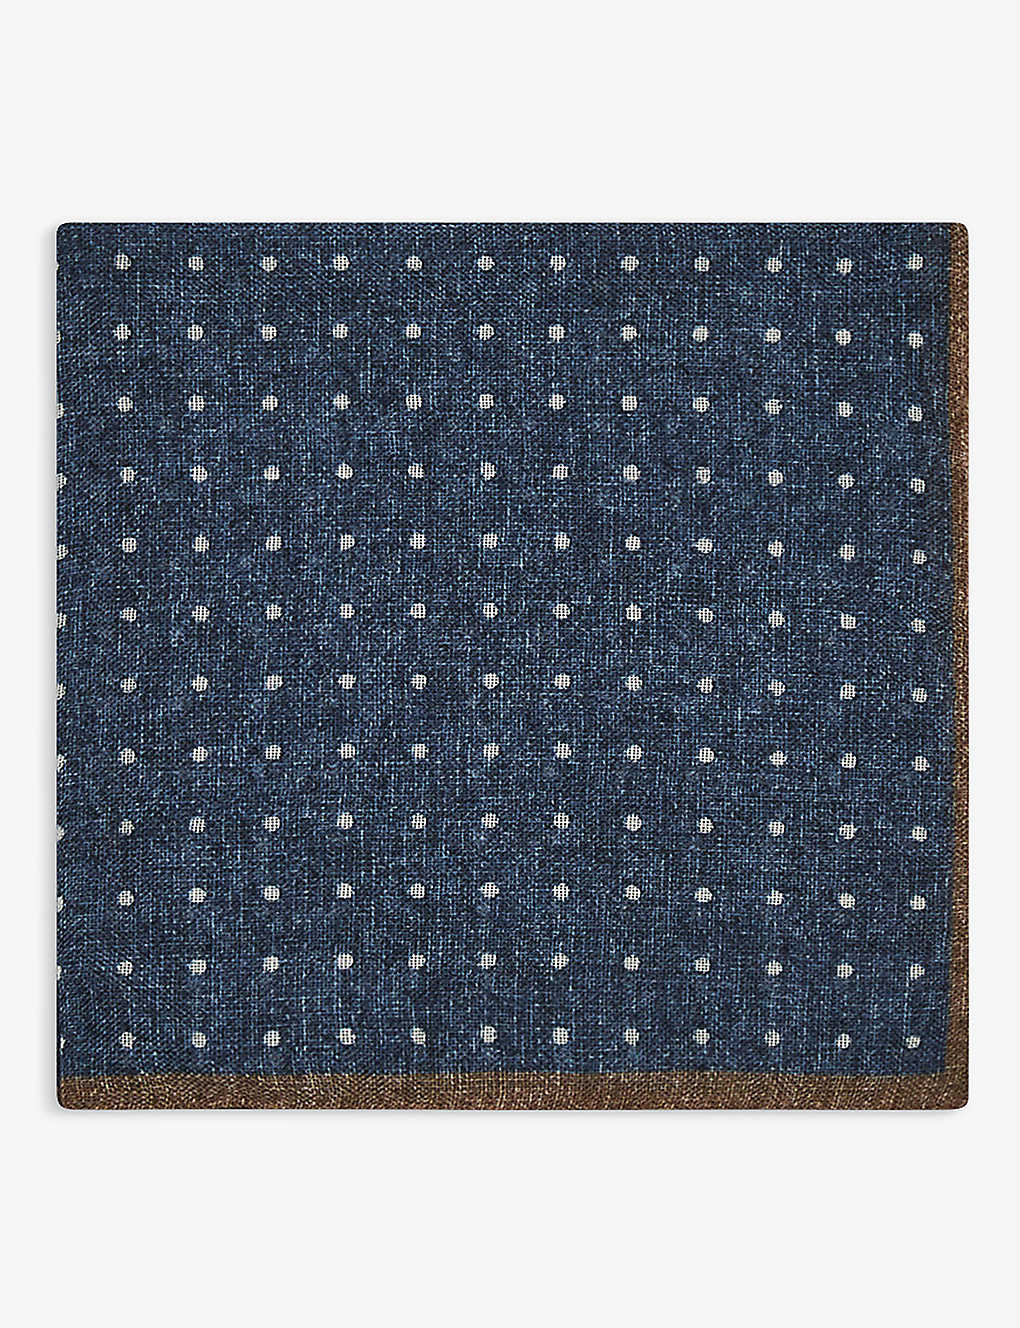 REISS: Naples wool pocket square 32cm x 32cm